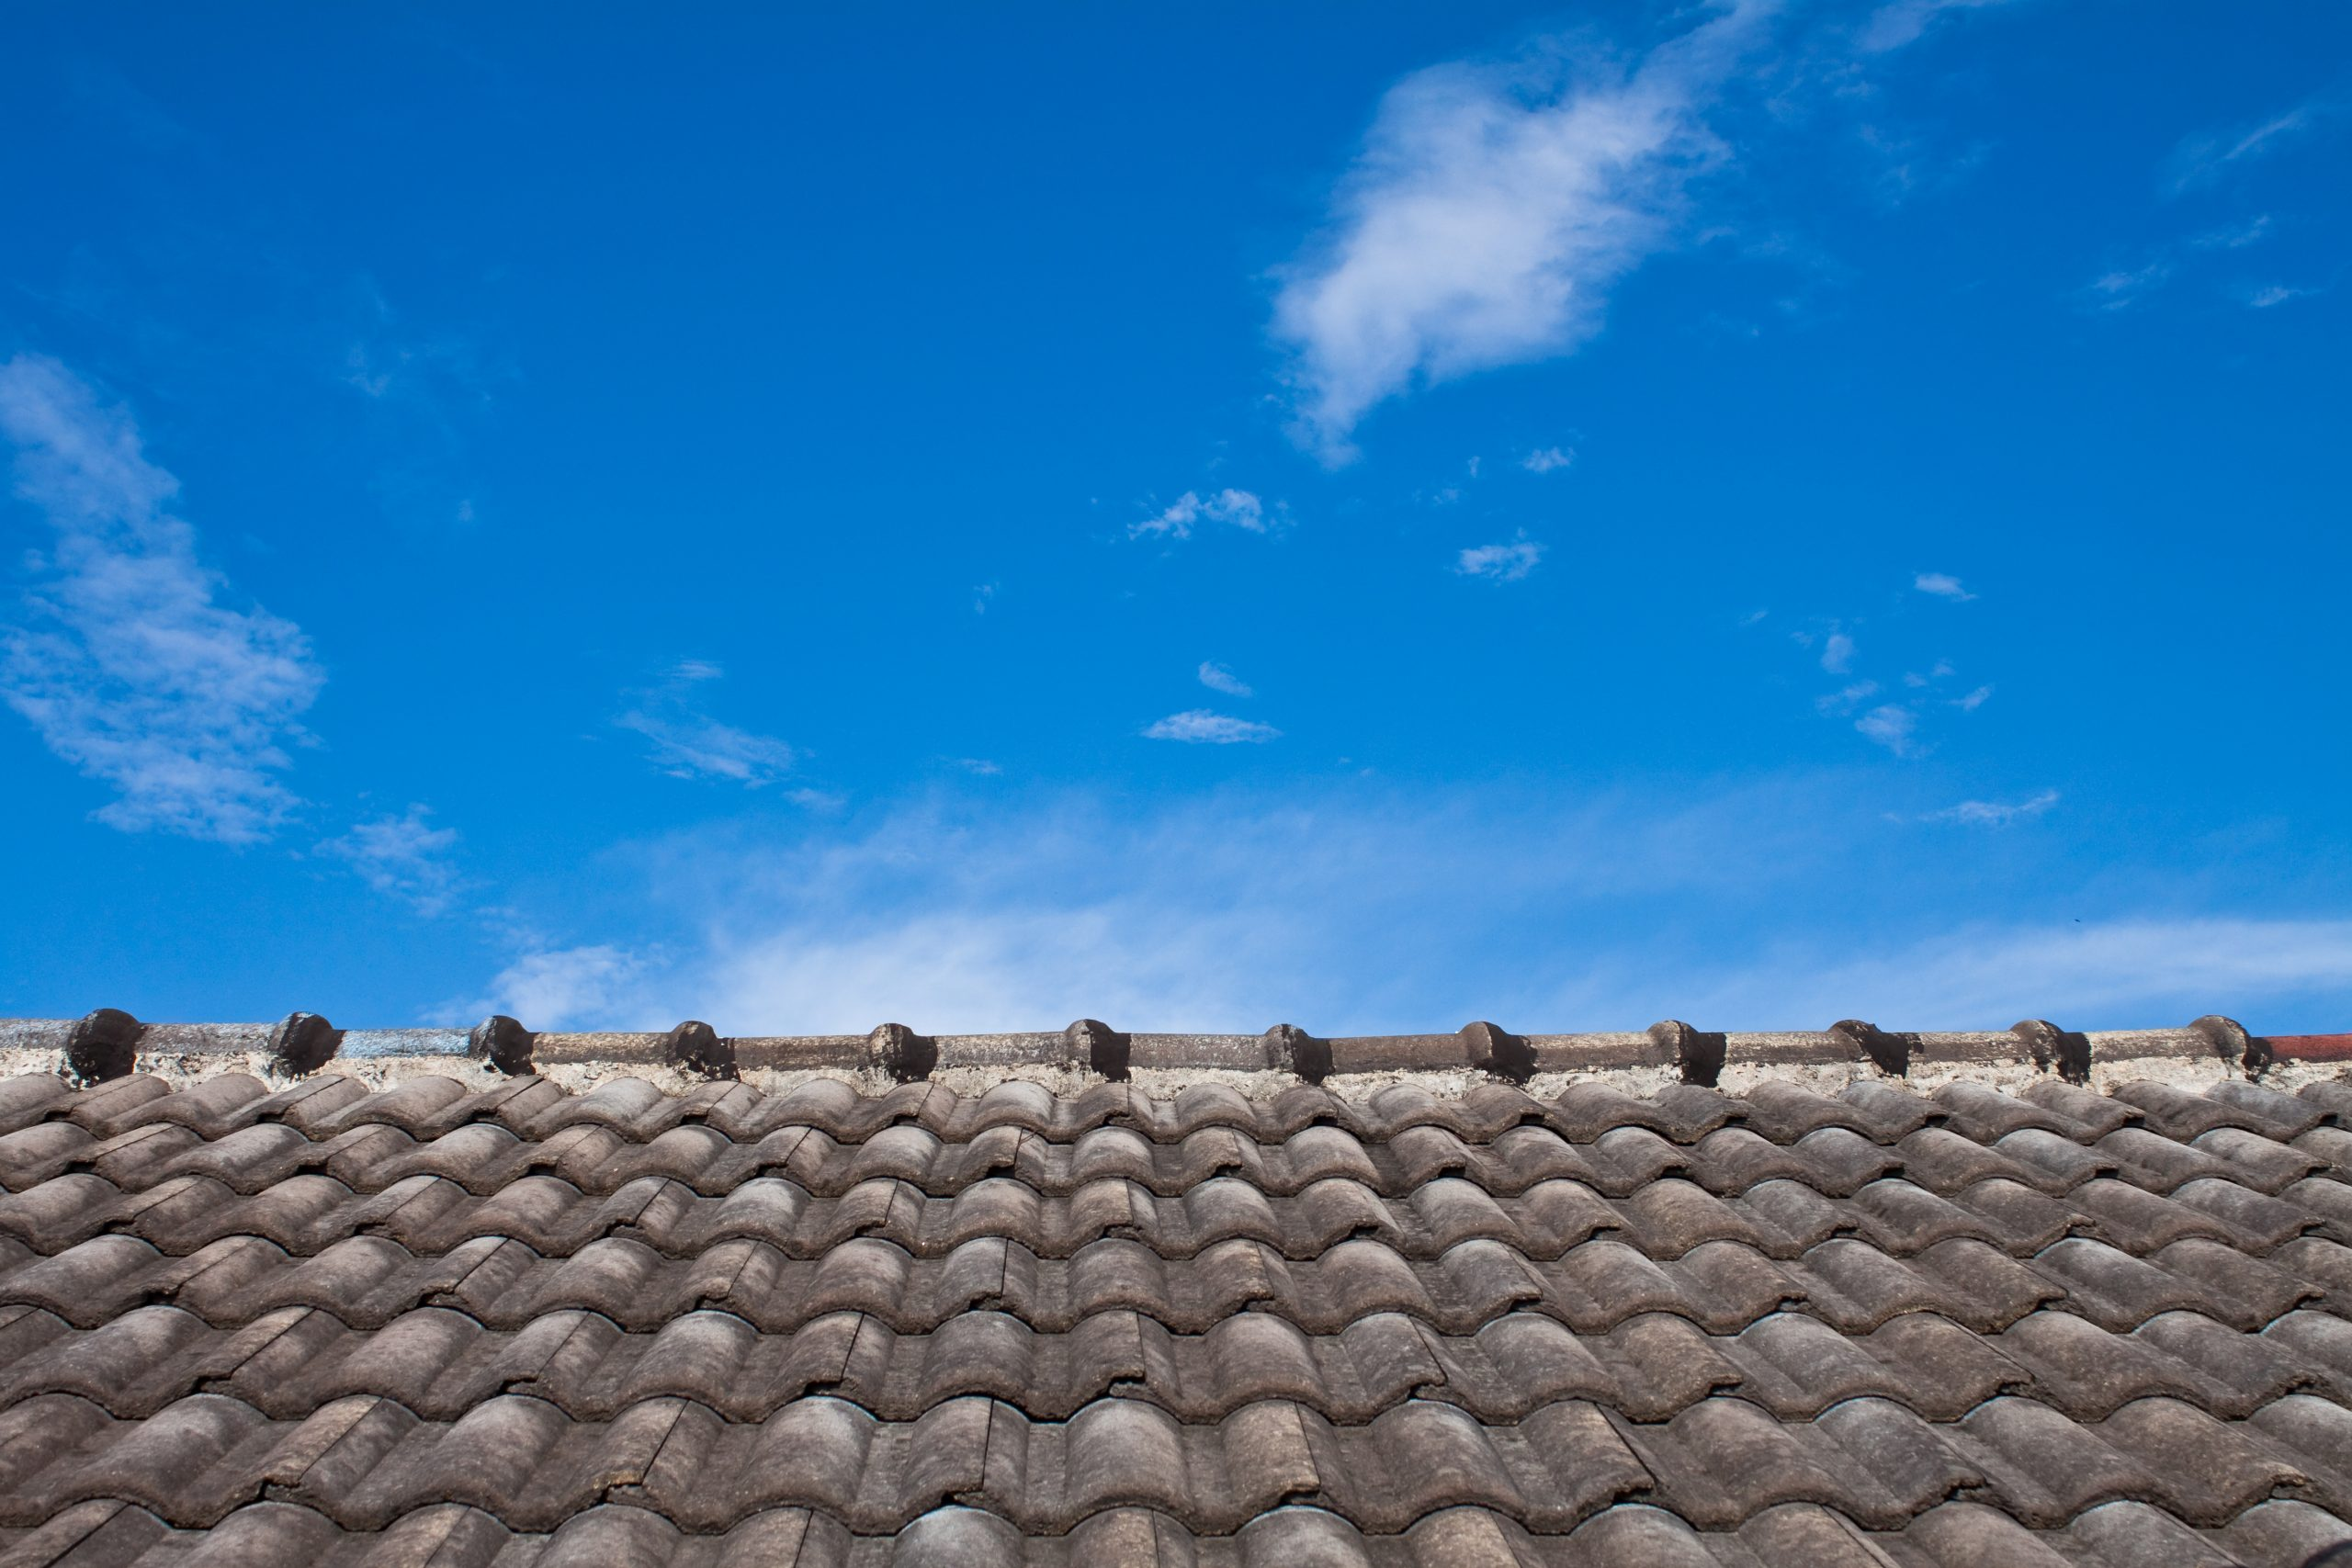 take from toproof,the roof is very old,not same the sky is very beautiful